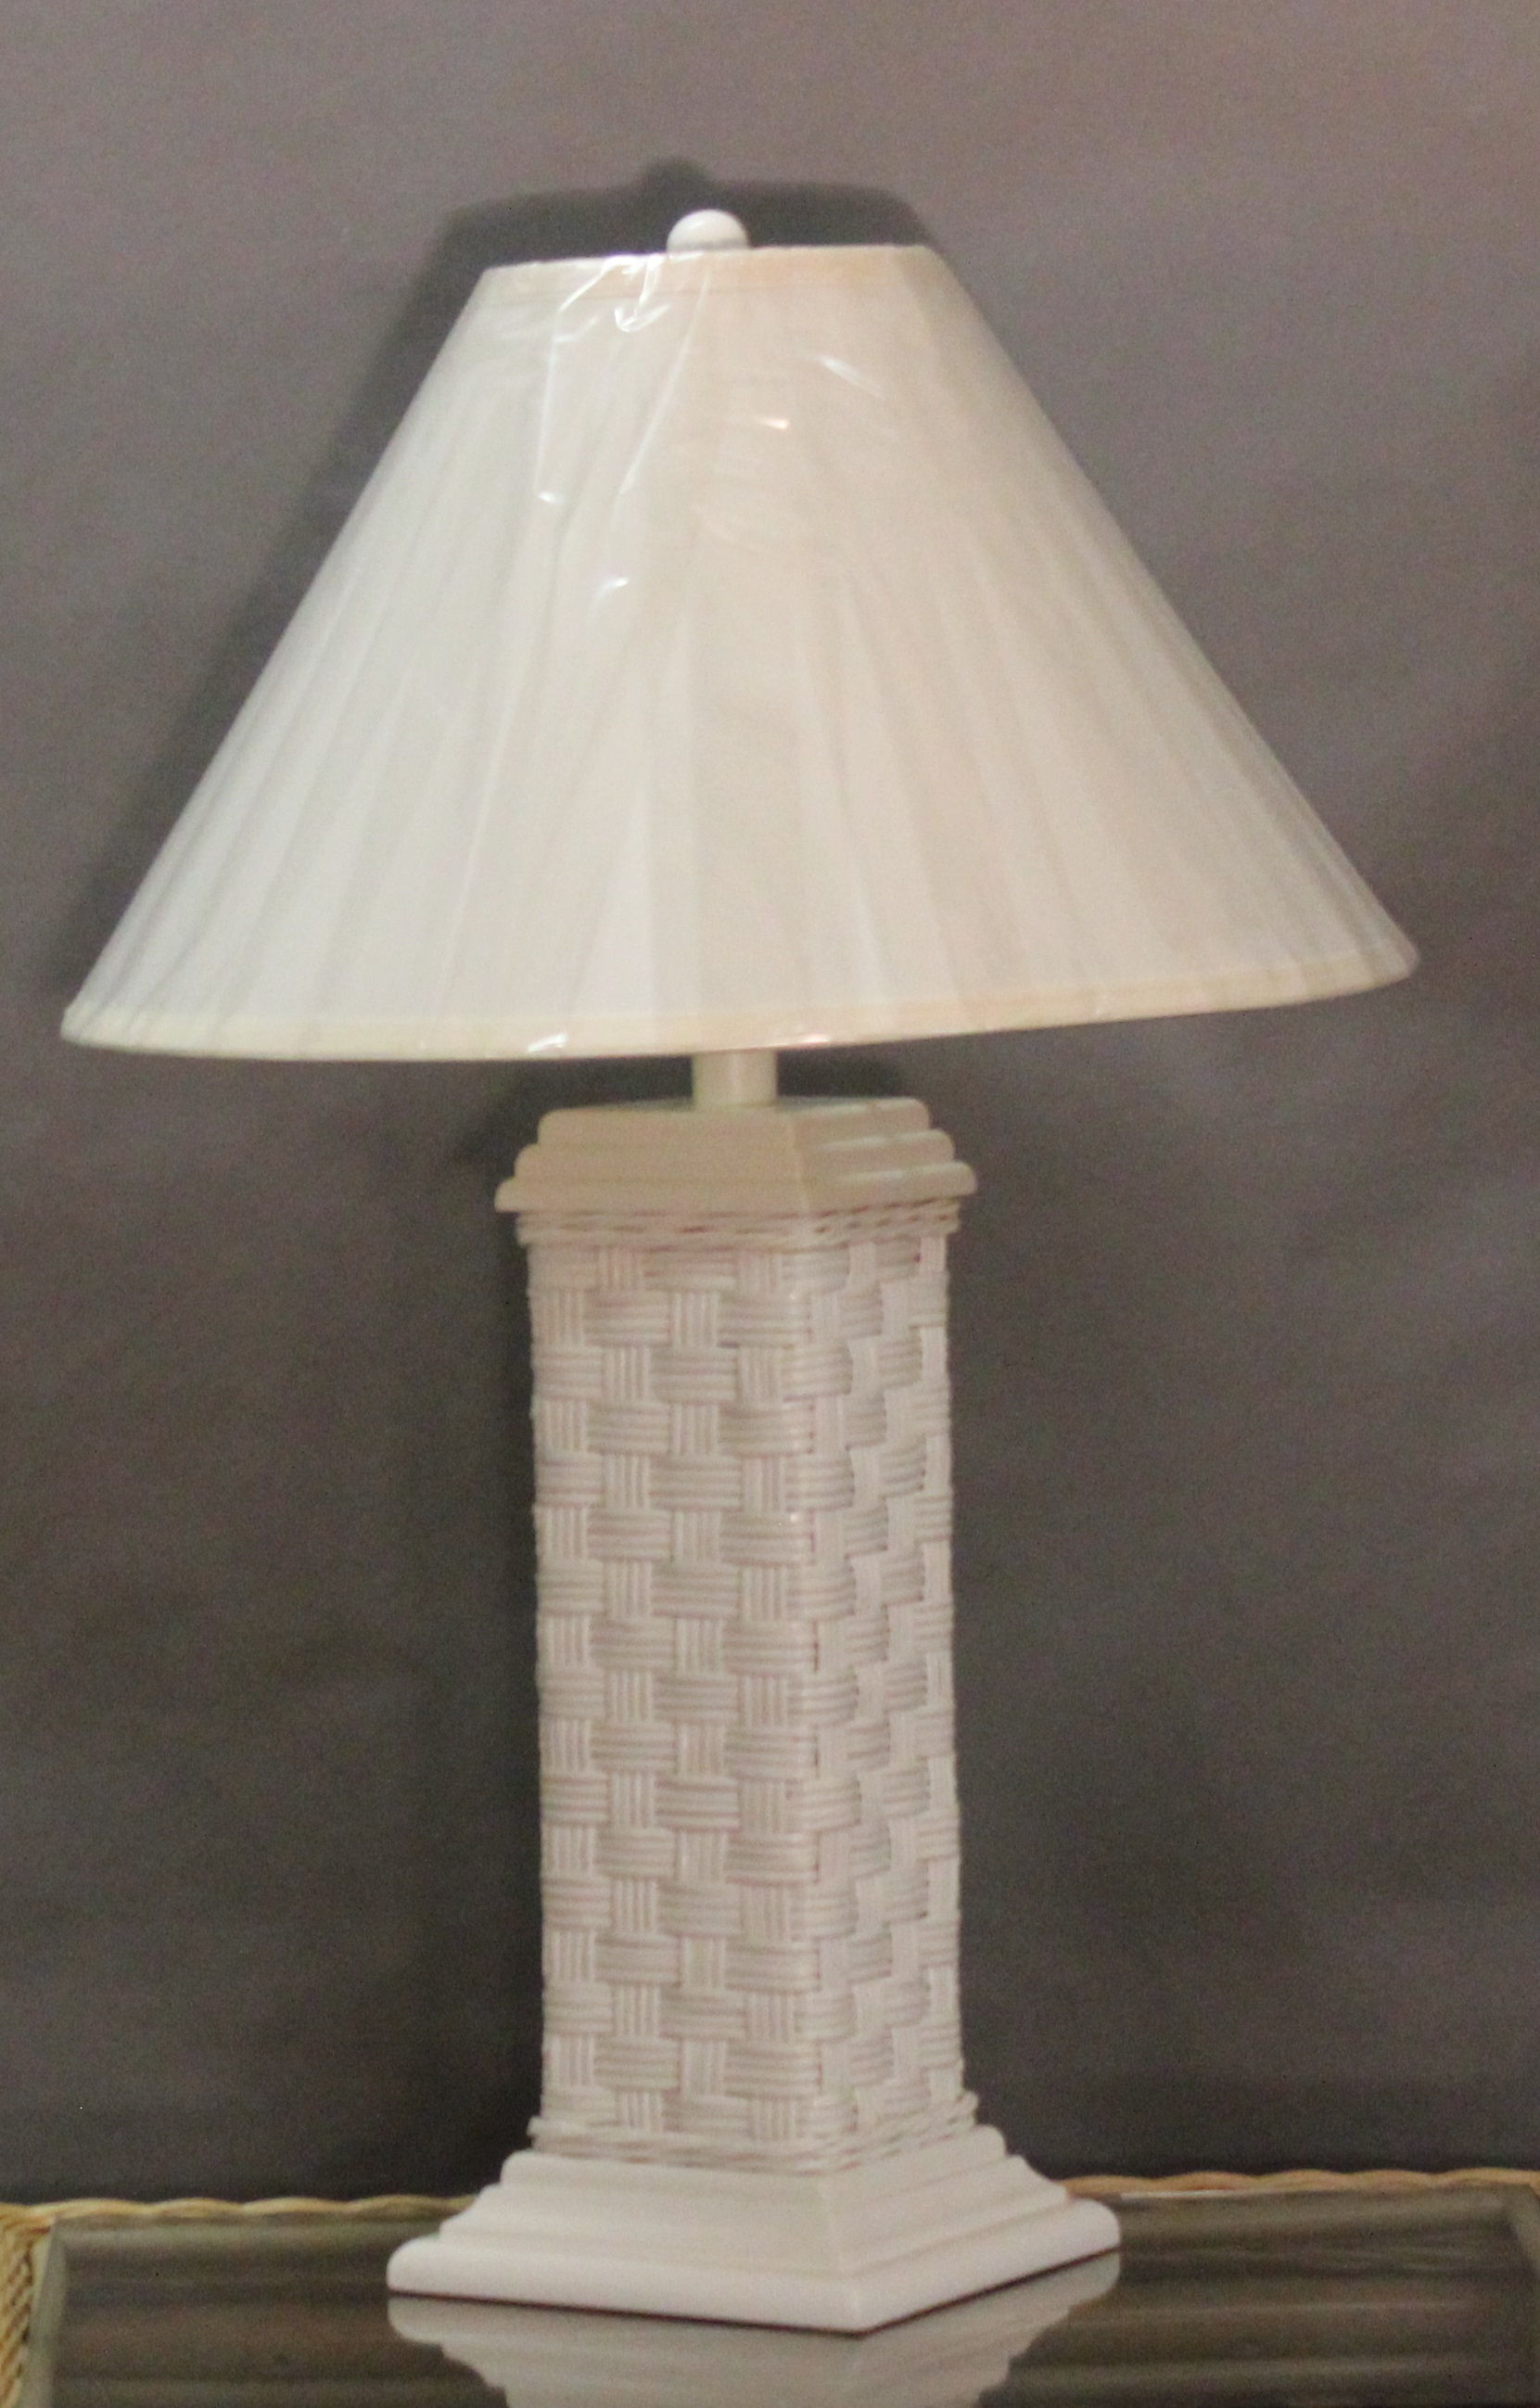 & Tall White Wicker Table Lamp with Shade | All About Wicker